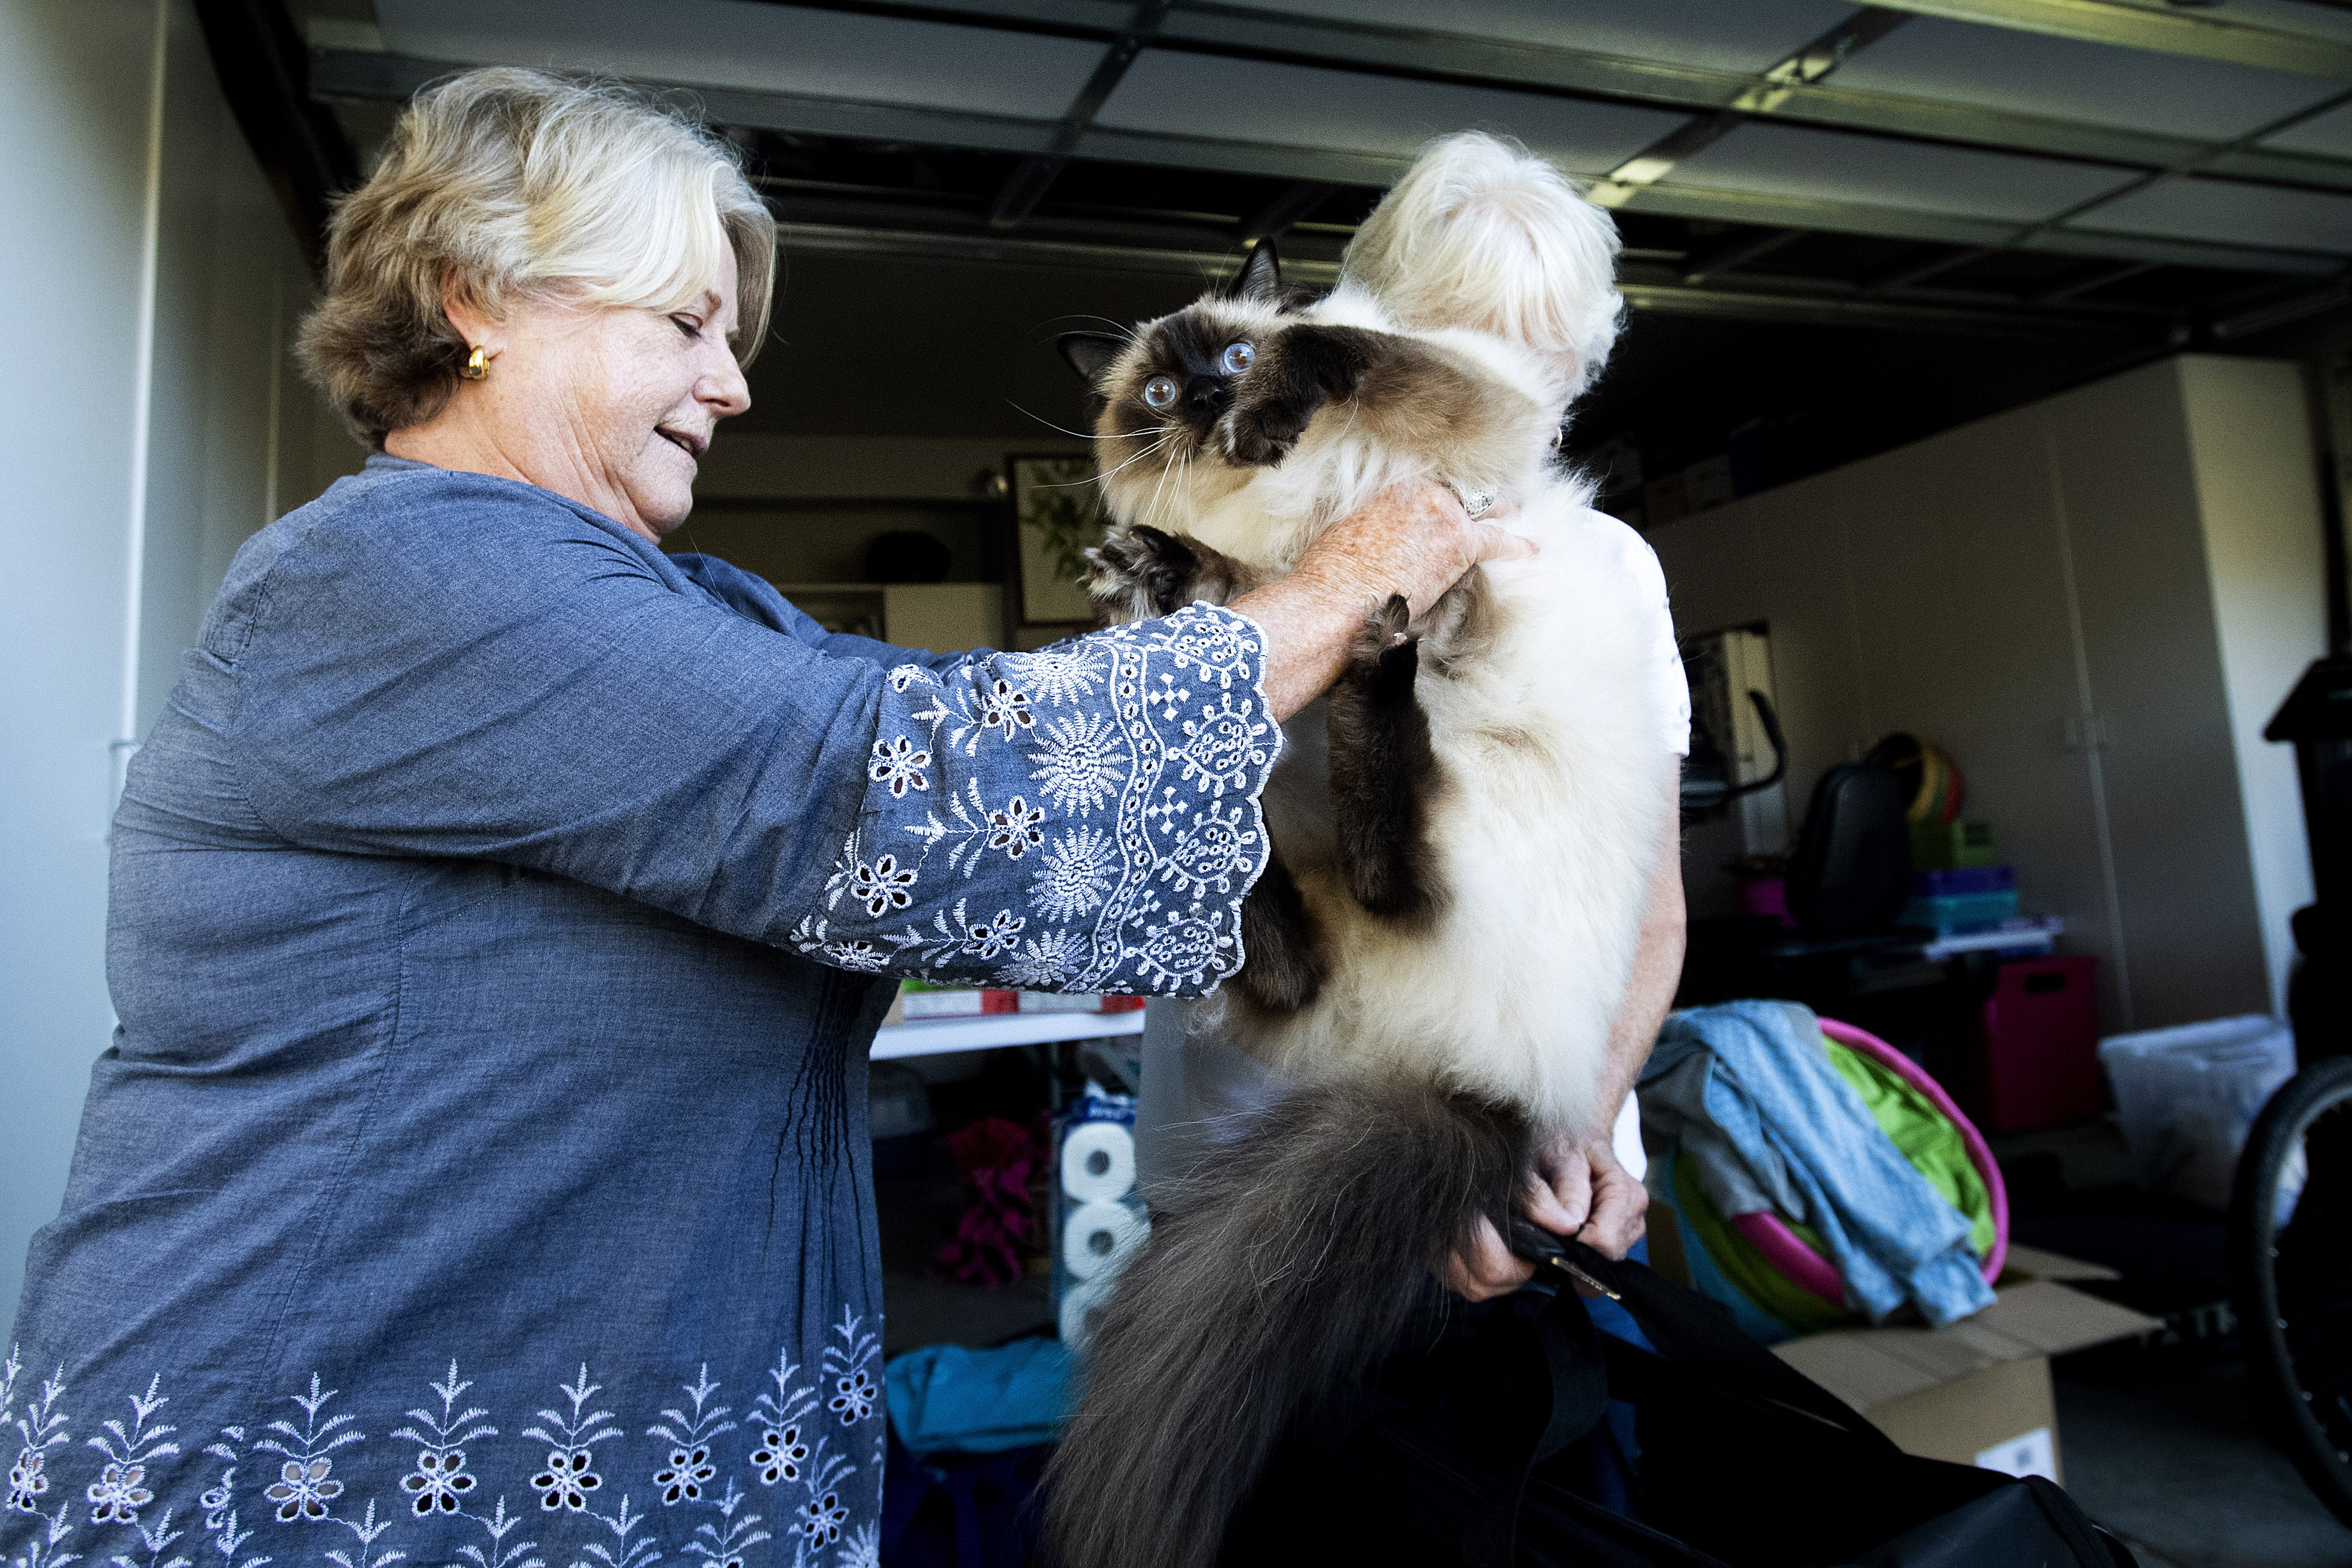 Woman in blue dress holding her big fluffy cat, who looks so scared, as she prepares to leave.